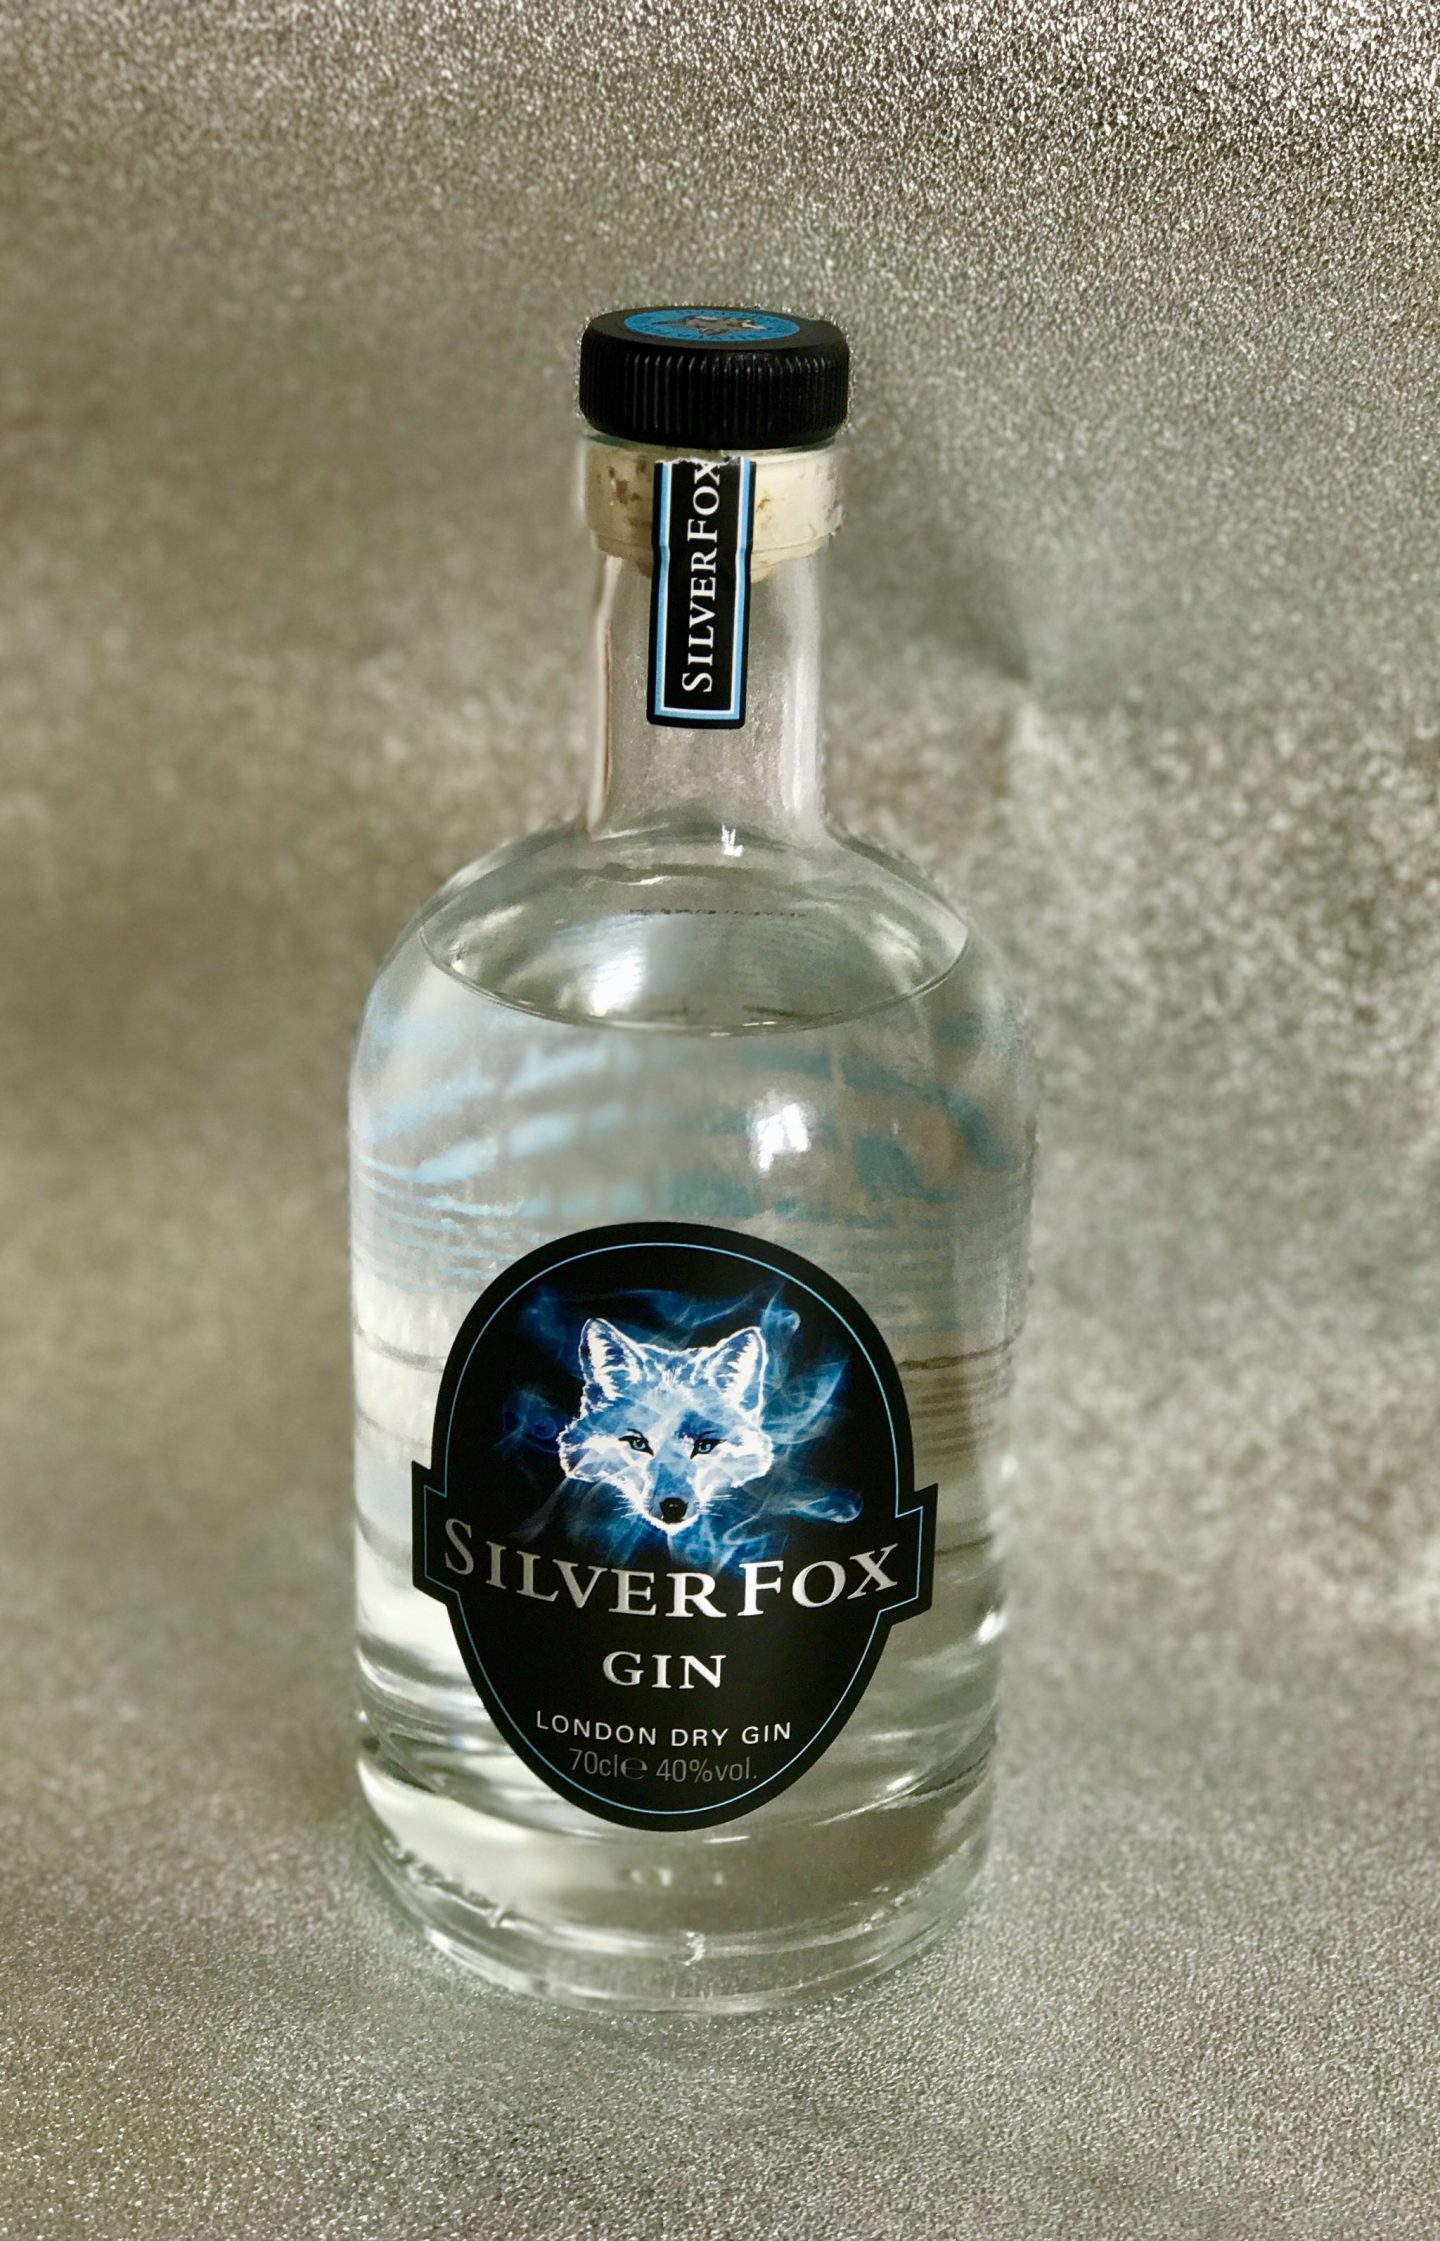 There's a new Gin…made in my town!